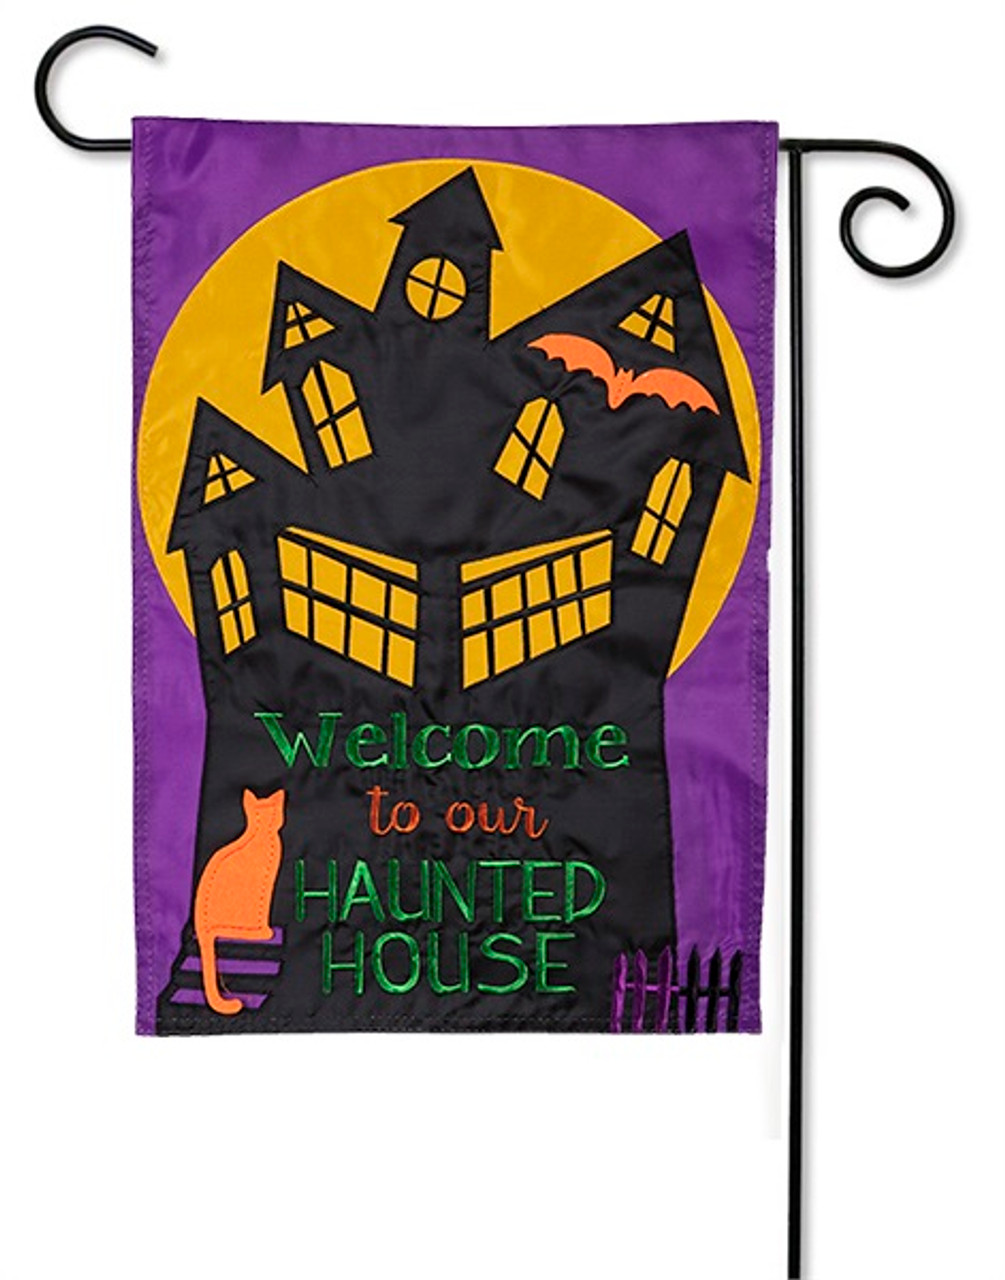 Haunted House Applique Garden Flag By Evergreen Flags 12 5 X 18 Garden Flags